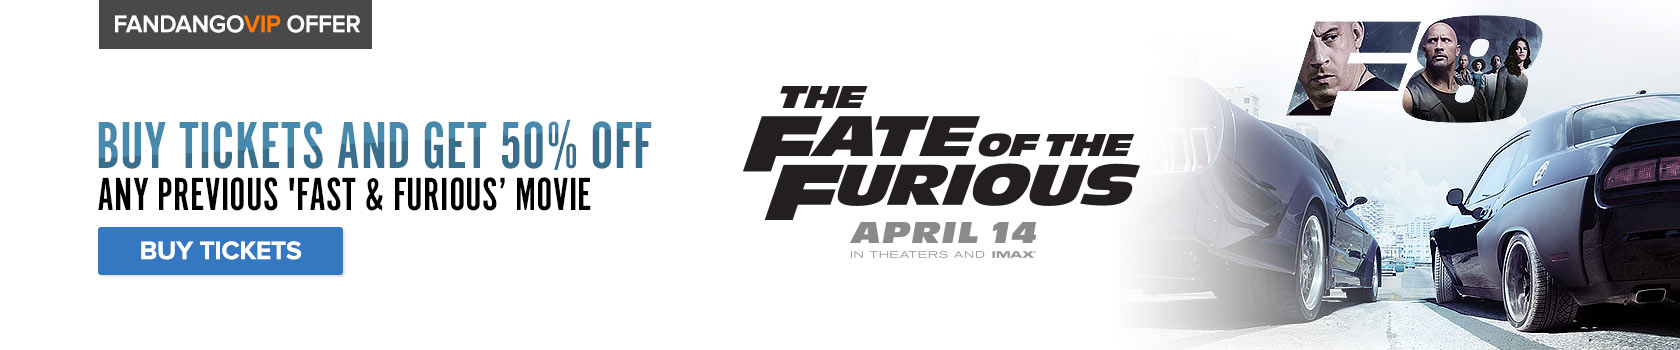 Fandango Fate of the Furious Free Gift